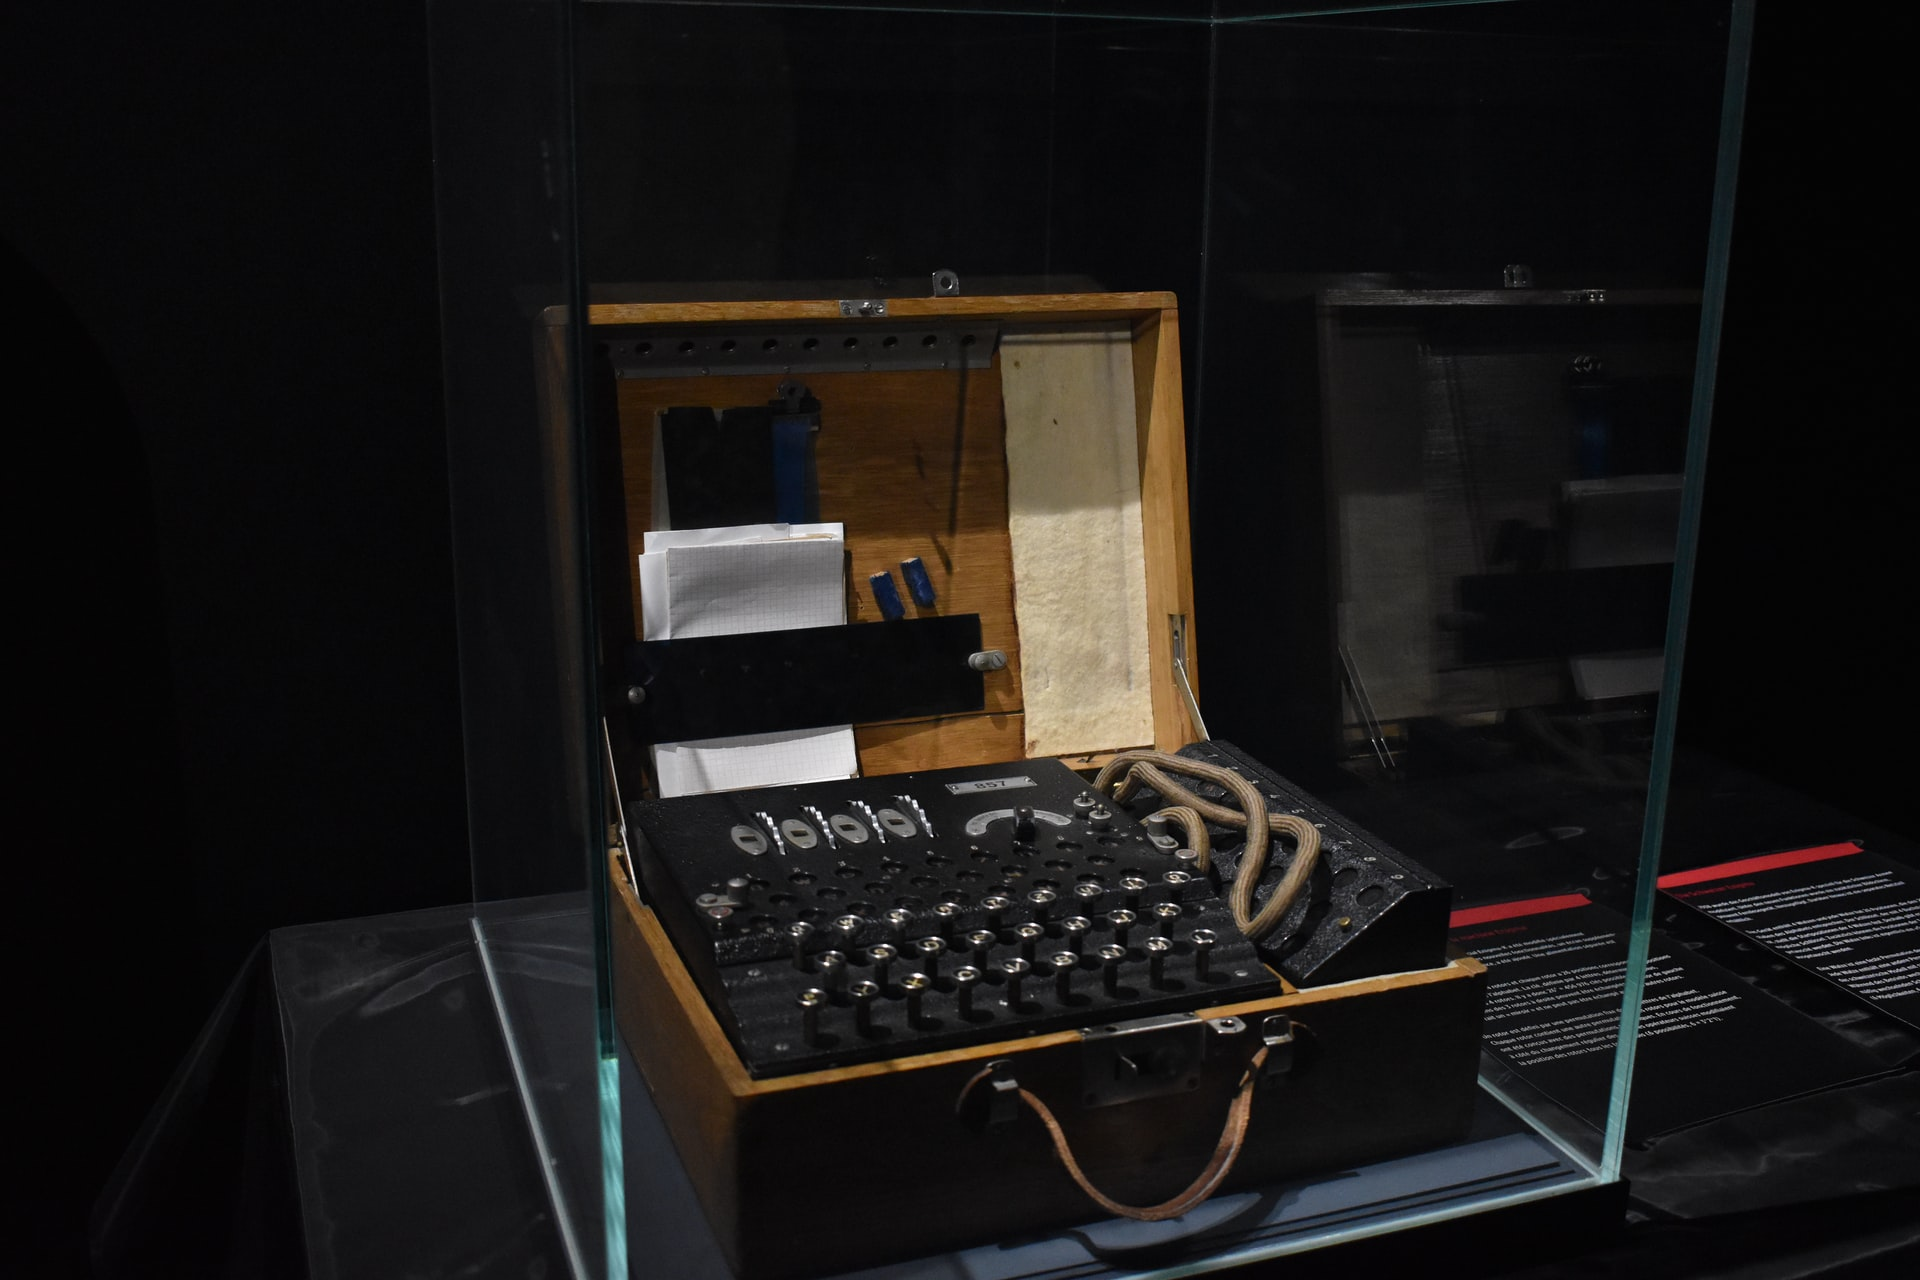 An Enigma cipher machine which is probably easier to understand than OpenPGP